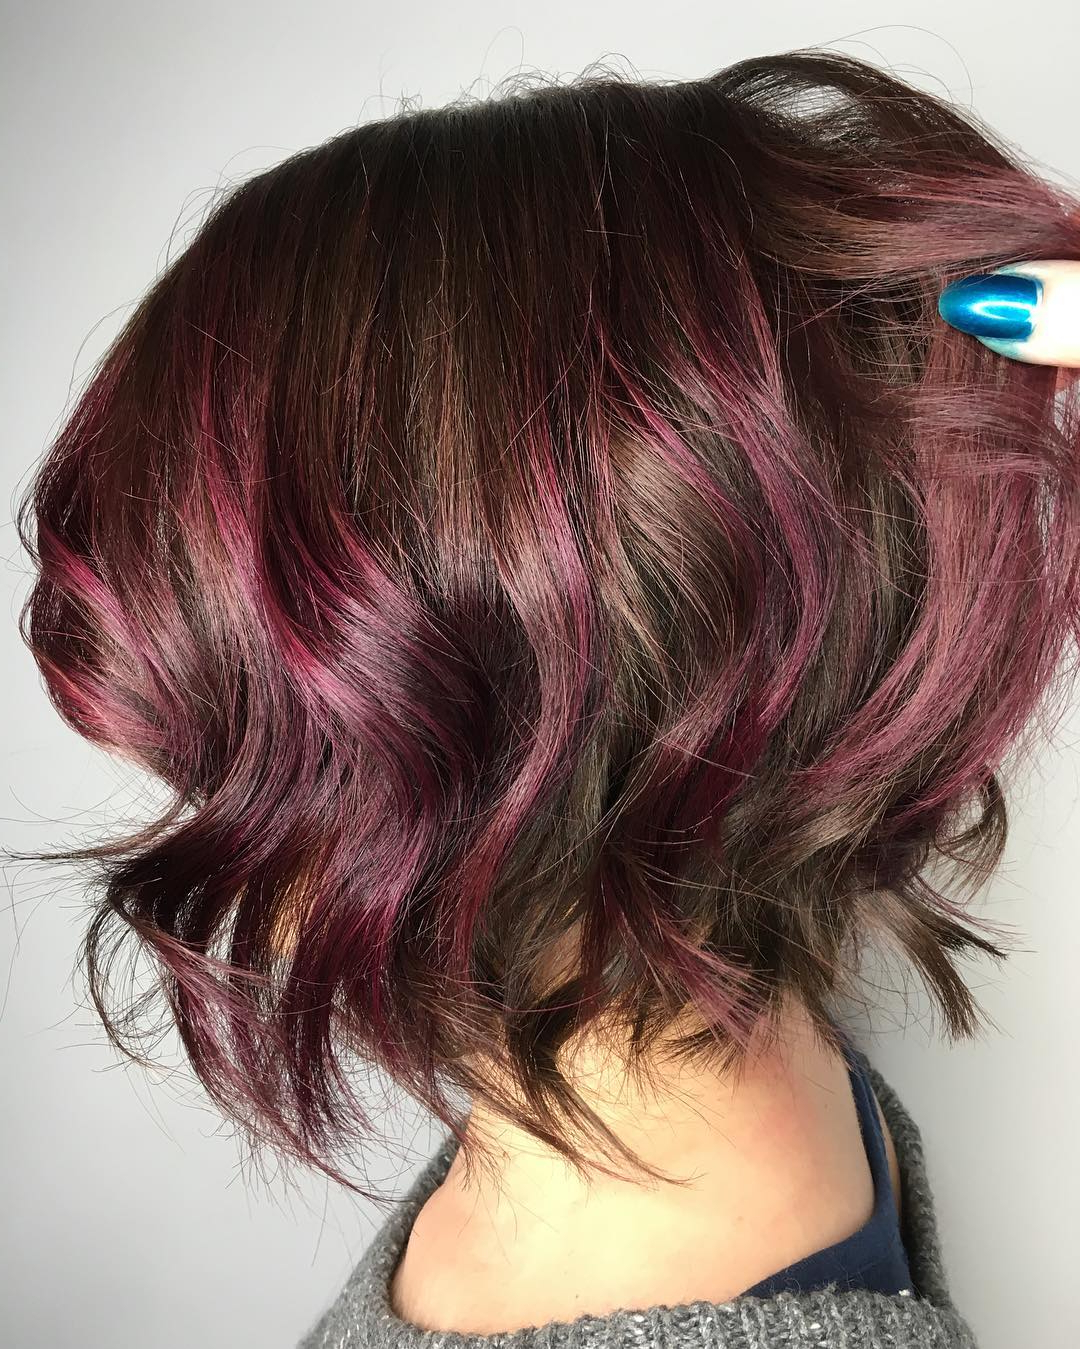 38 Super Cute Ways To Curl Your Bob – Popular Haircuts For Women 2017 Inside Cute Curly Bob Hairstyles (View 10 of 20)